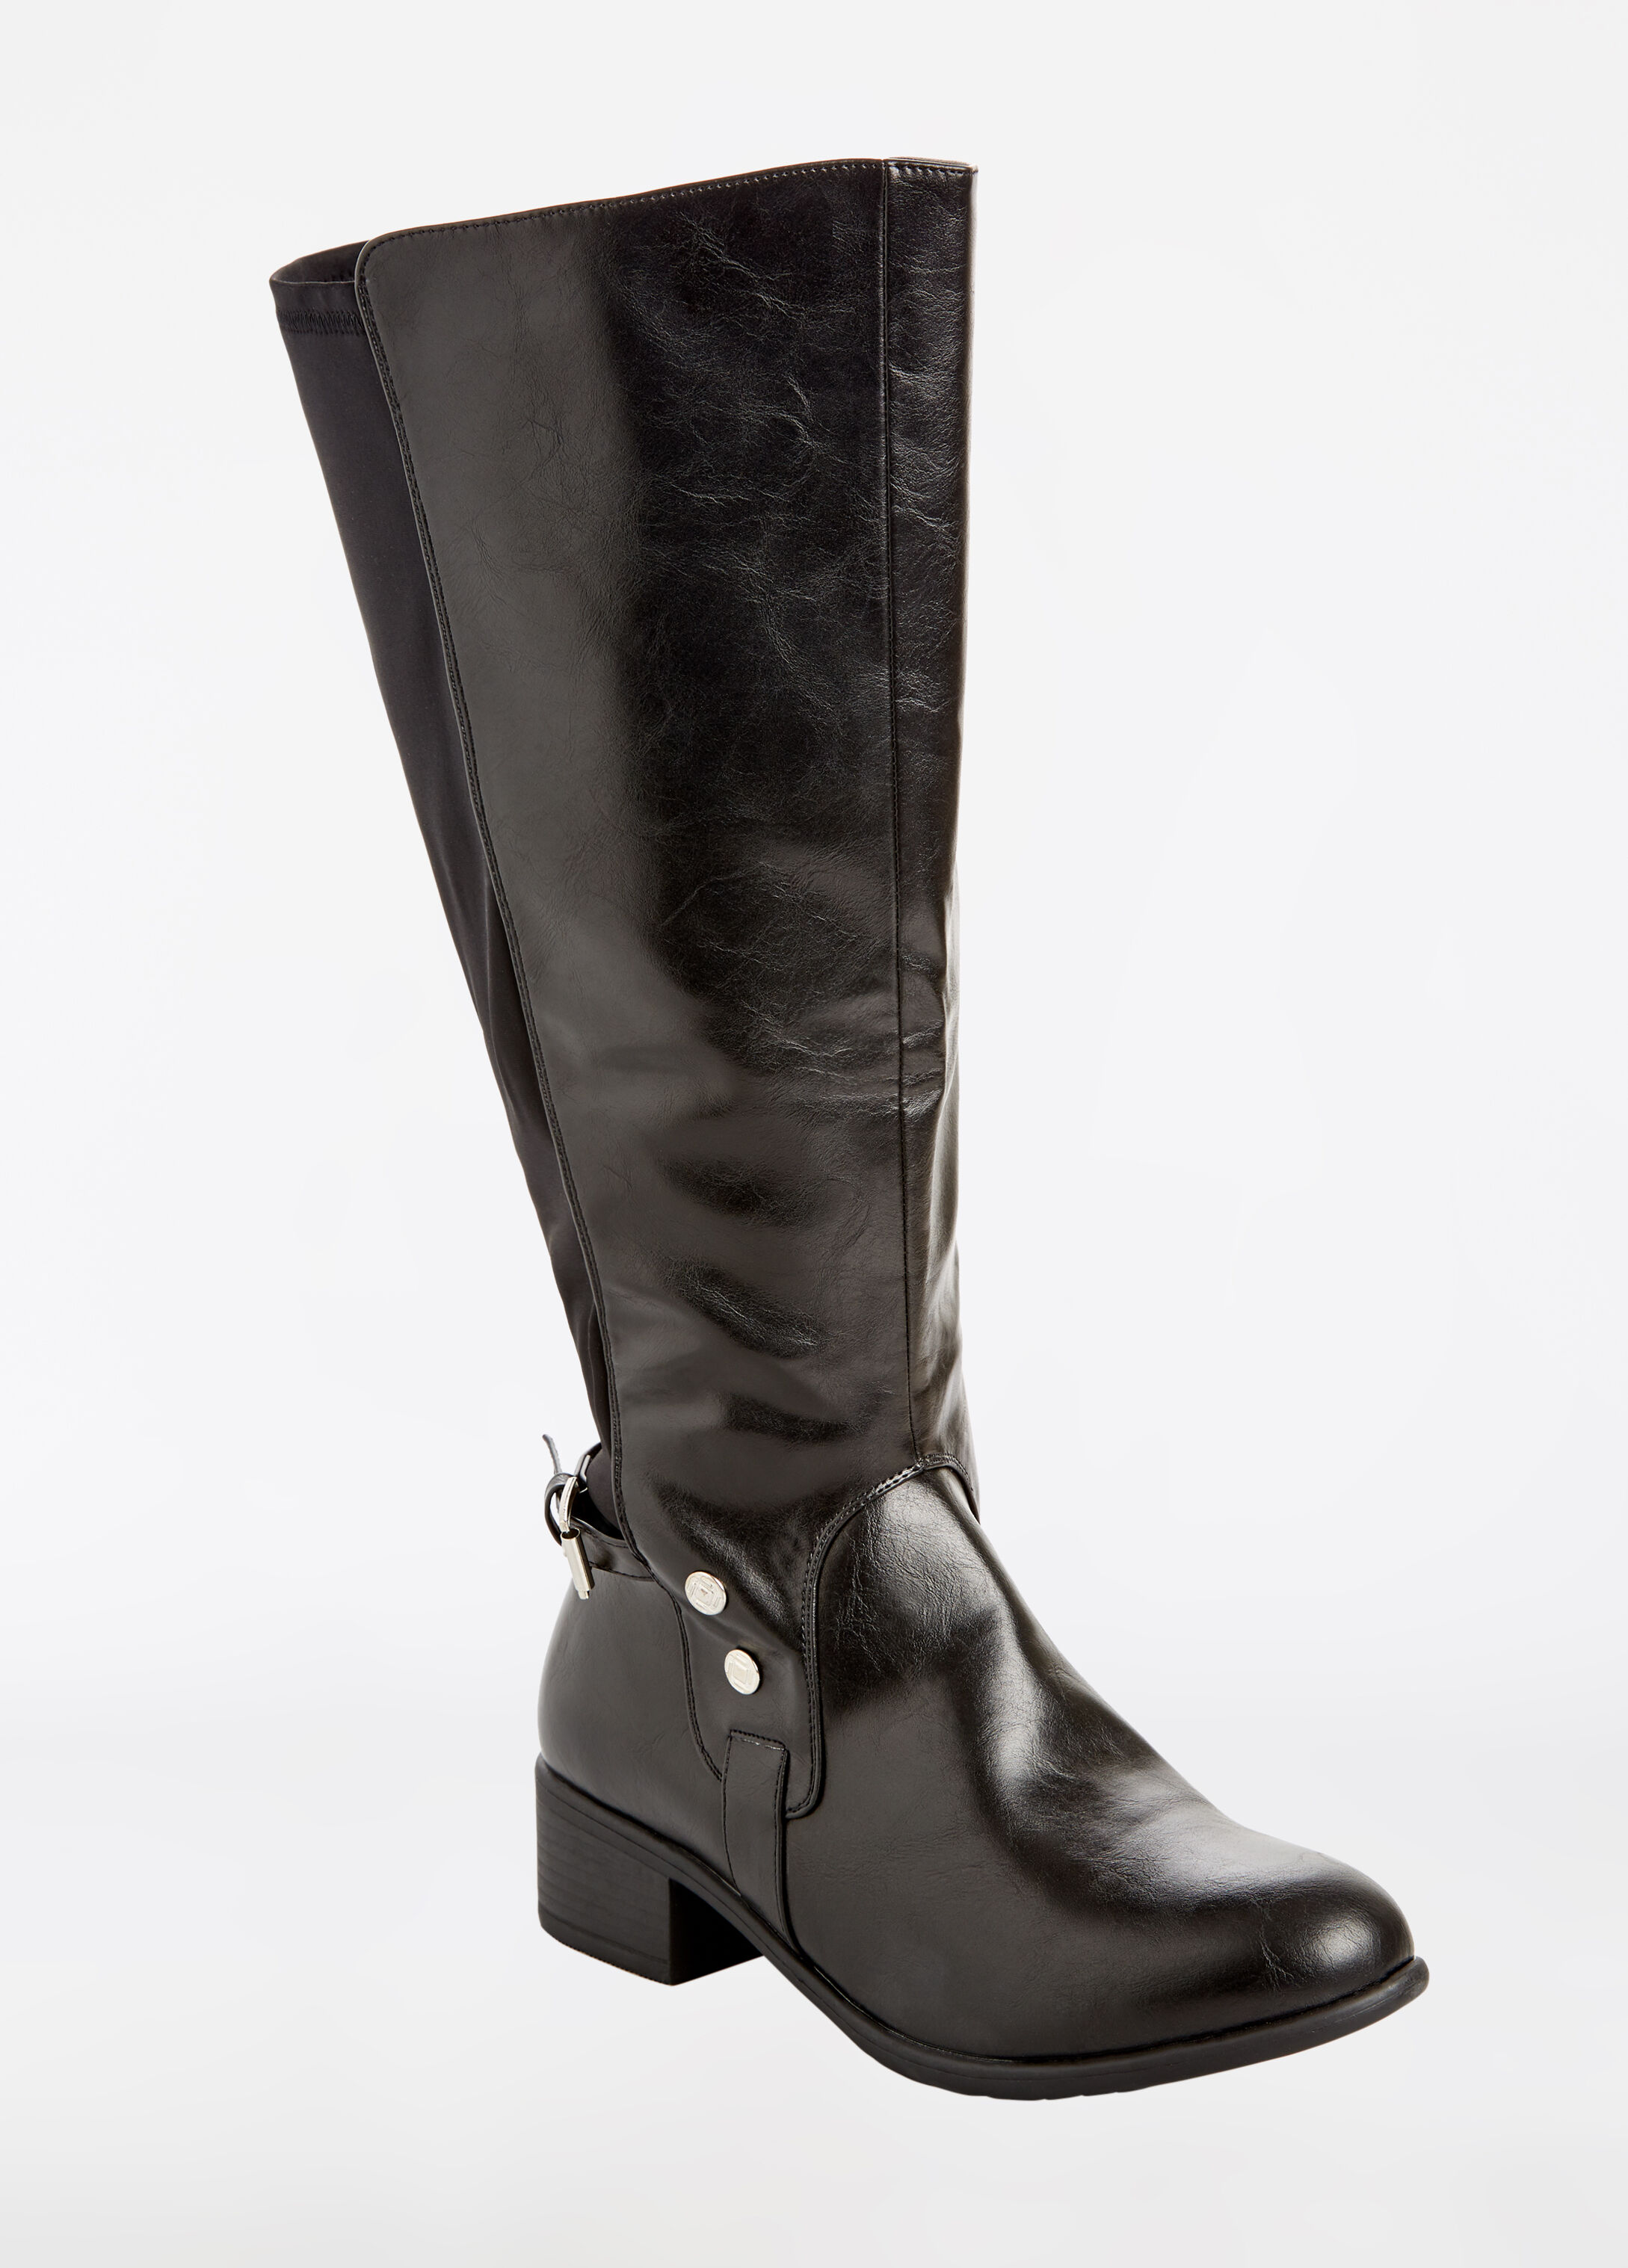 Mix Media Faux Leather Boot - Extra Wide Width - Wide CalfWide Width - Wide Calf